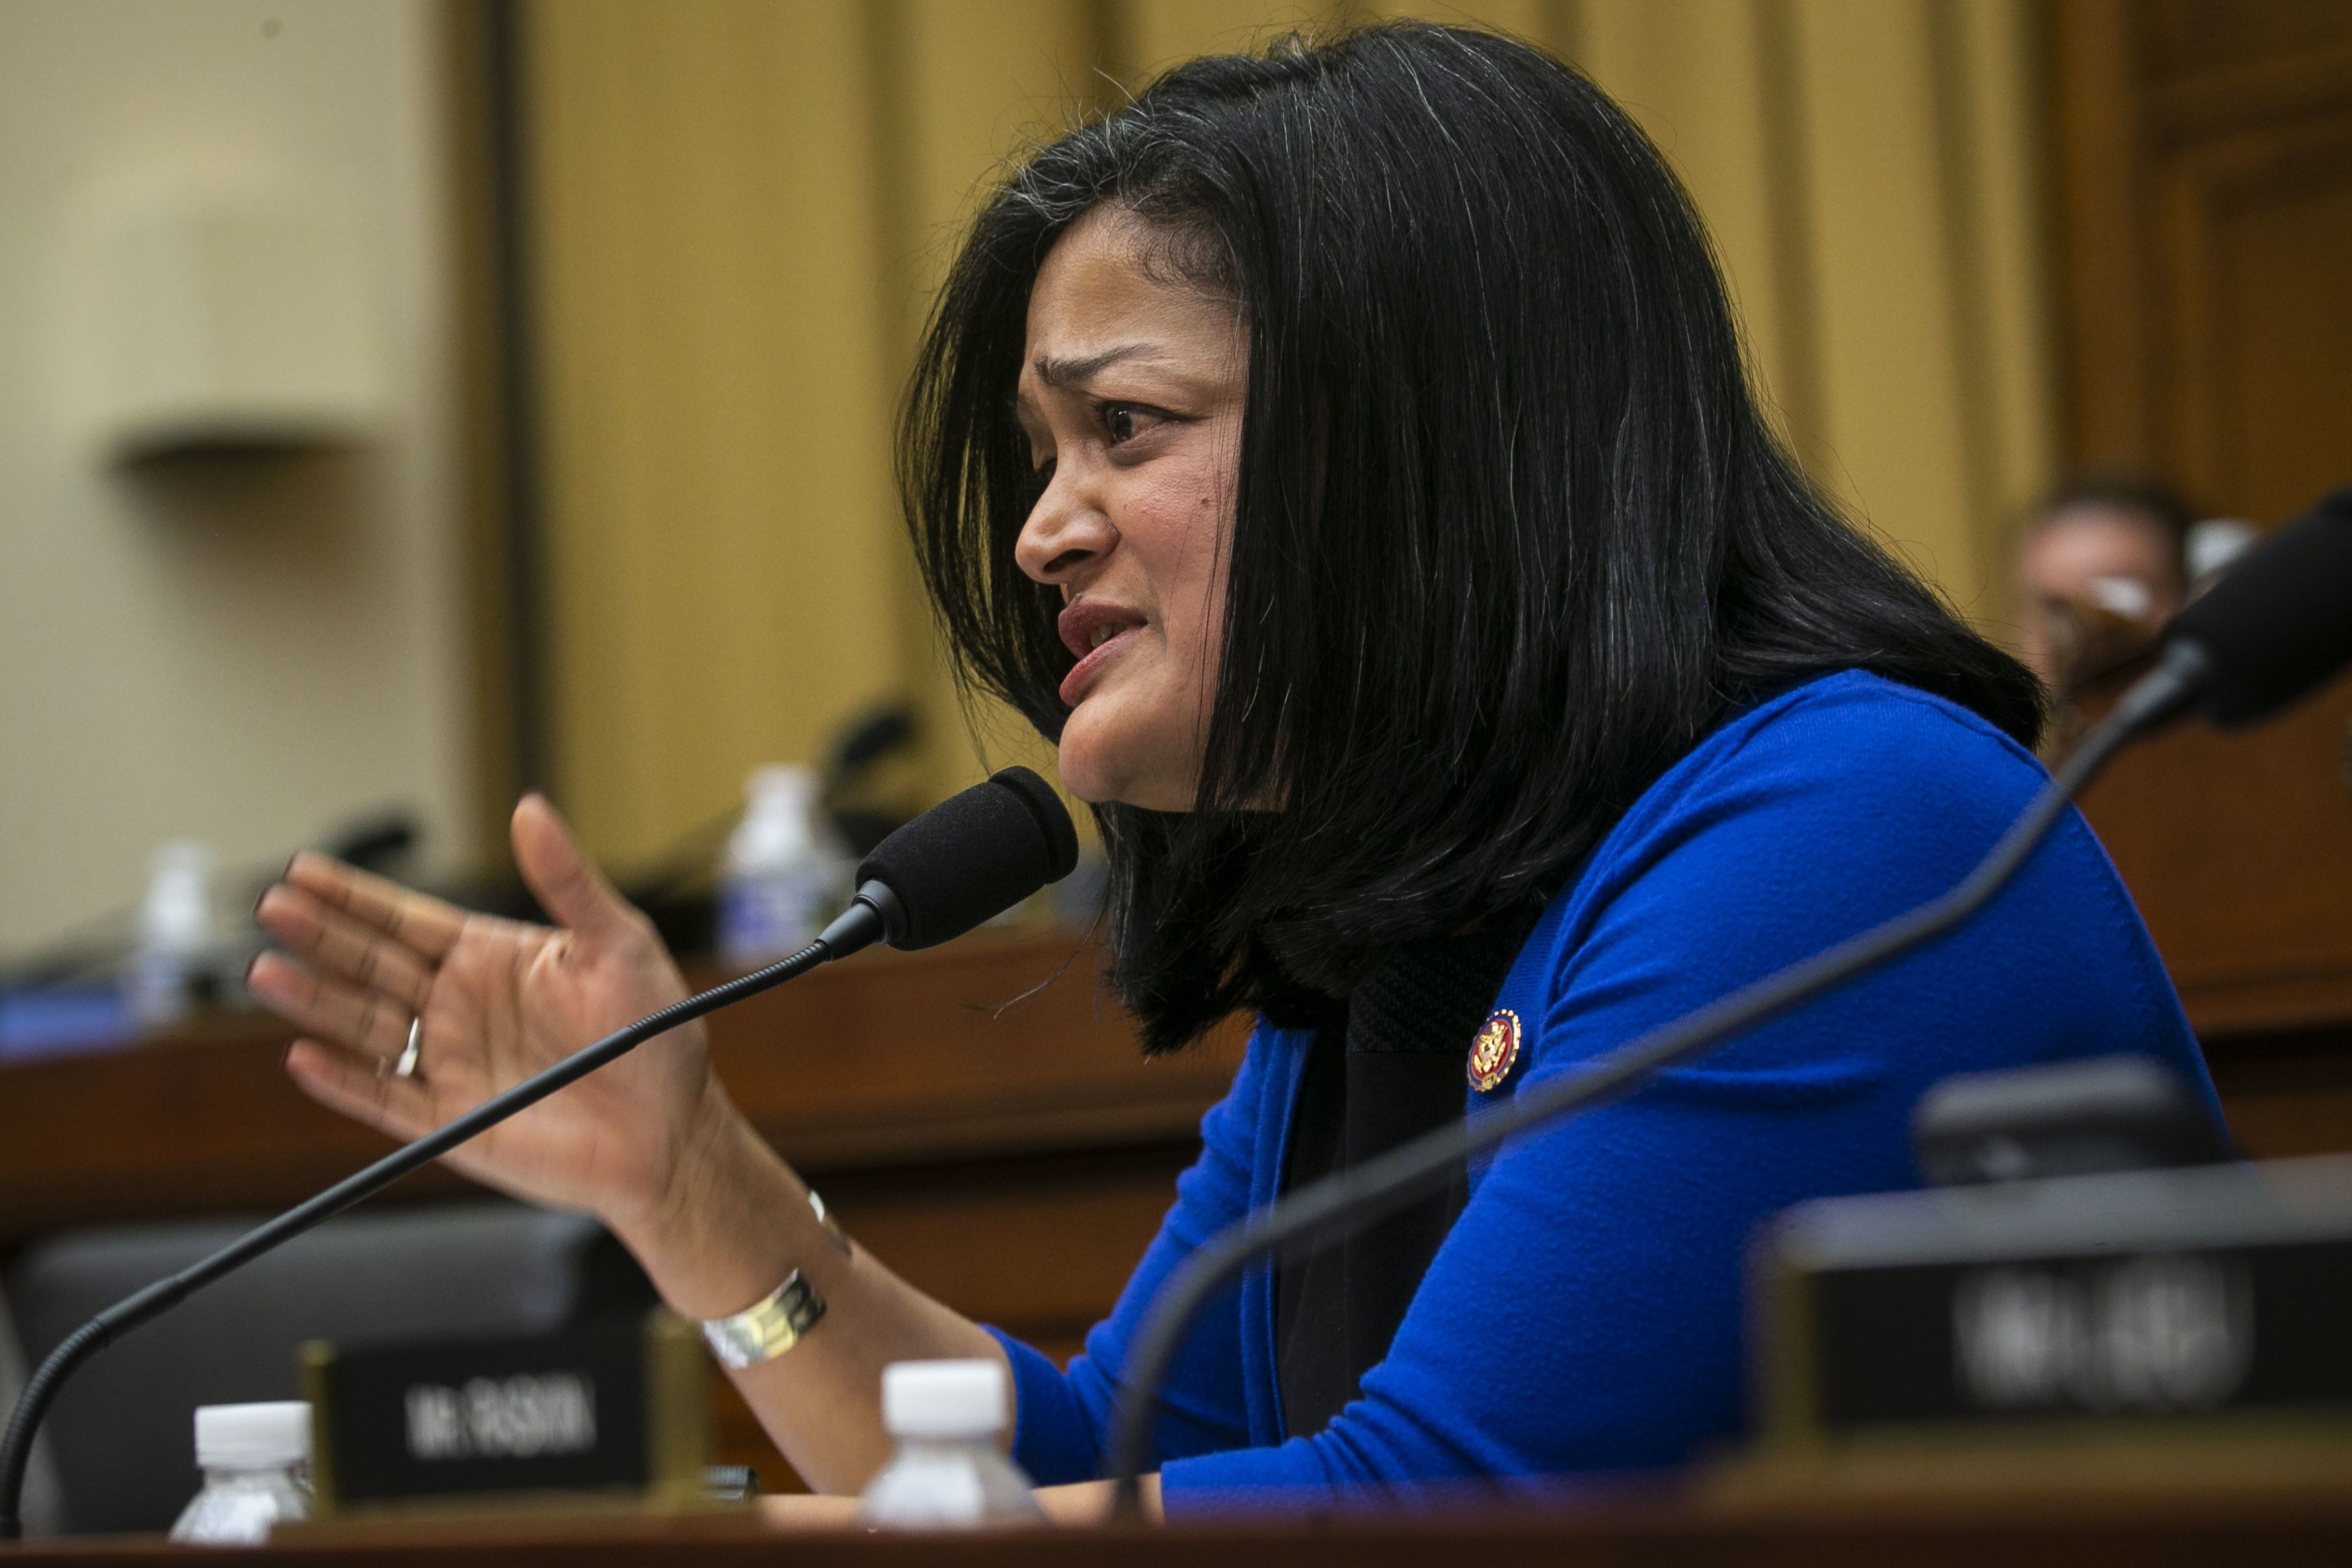 Representative Pramila Jayapal, a Democrat from Washington, speaks during a House Judiciary Committee hearing with Matthew Whitaker, acting U.S. attorney general, not pictured, in Washington, D.C., U.S., on Friday. Feb. 8, 2019. Whitaker told lawmakers 'I have not interfered in any way' in Special Counsel Robert Mueller's Russia investigation, as lawmakers pressed him on conversations with President Donald Trump during a confrontational House hearing. Photographer: Al Drago/Bloomberg via Getty Images